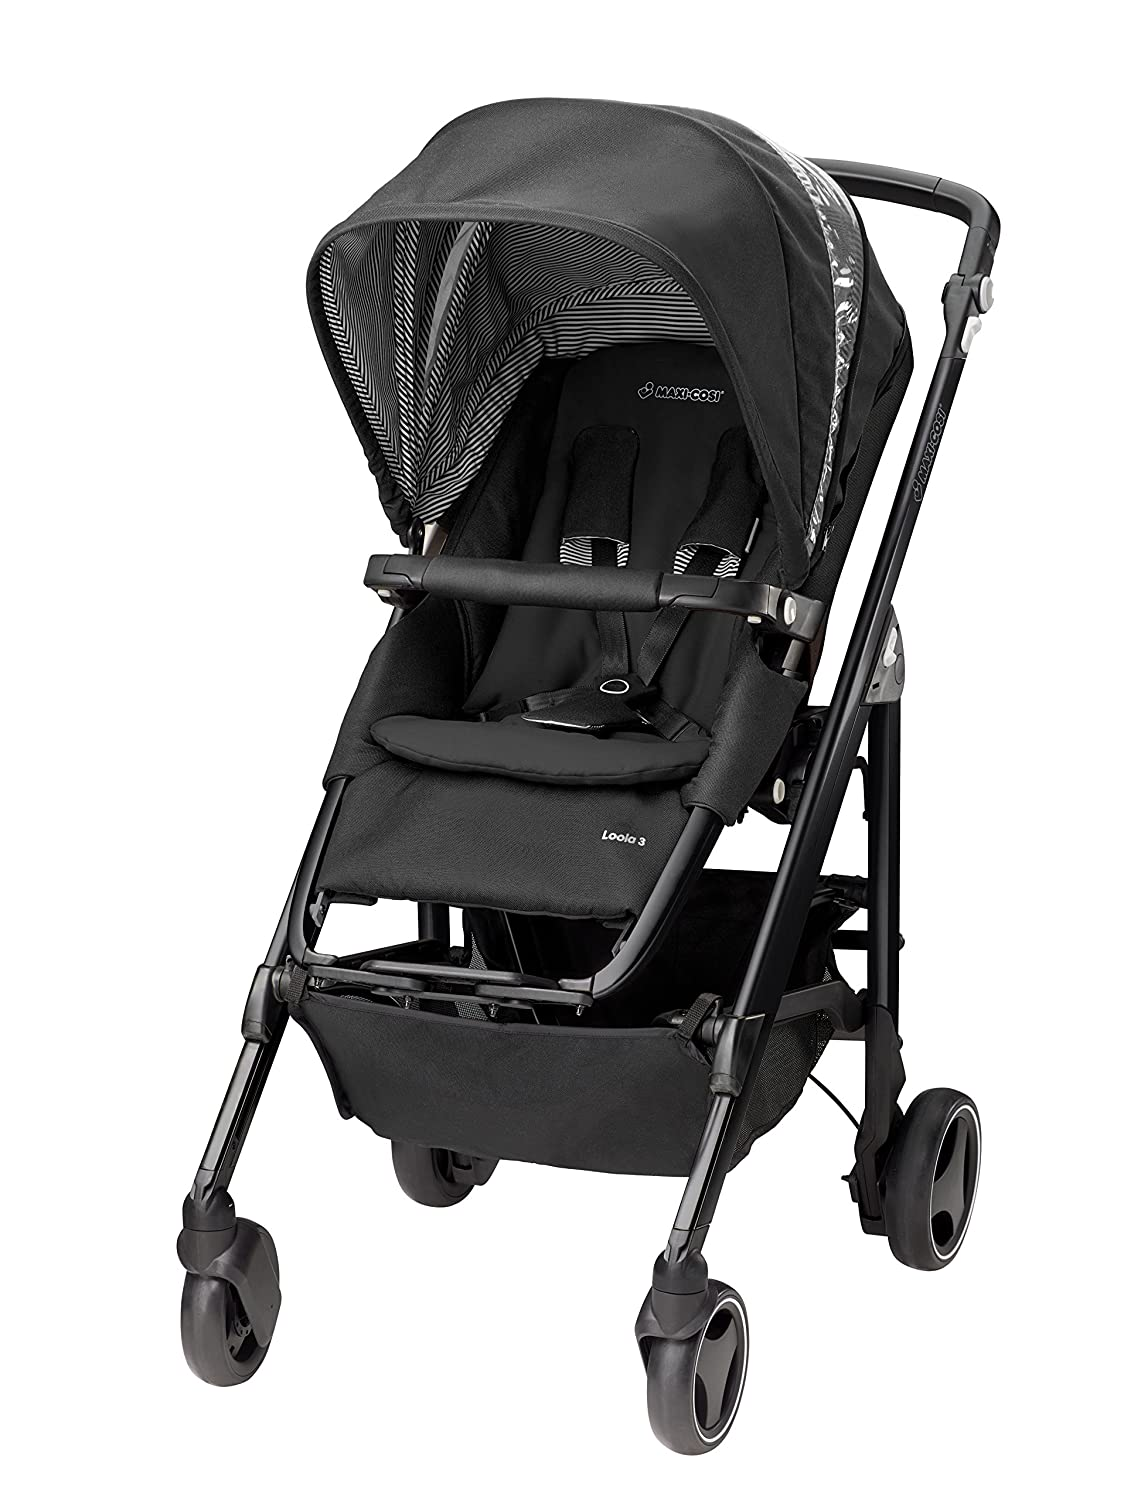 Maxi-Cosi Loola 3 Black Frame Pushchair